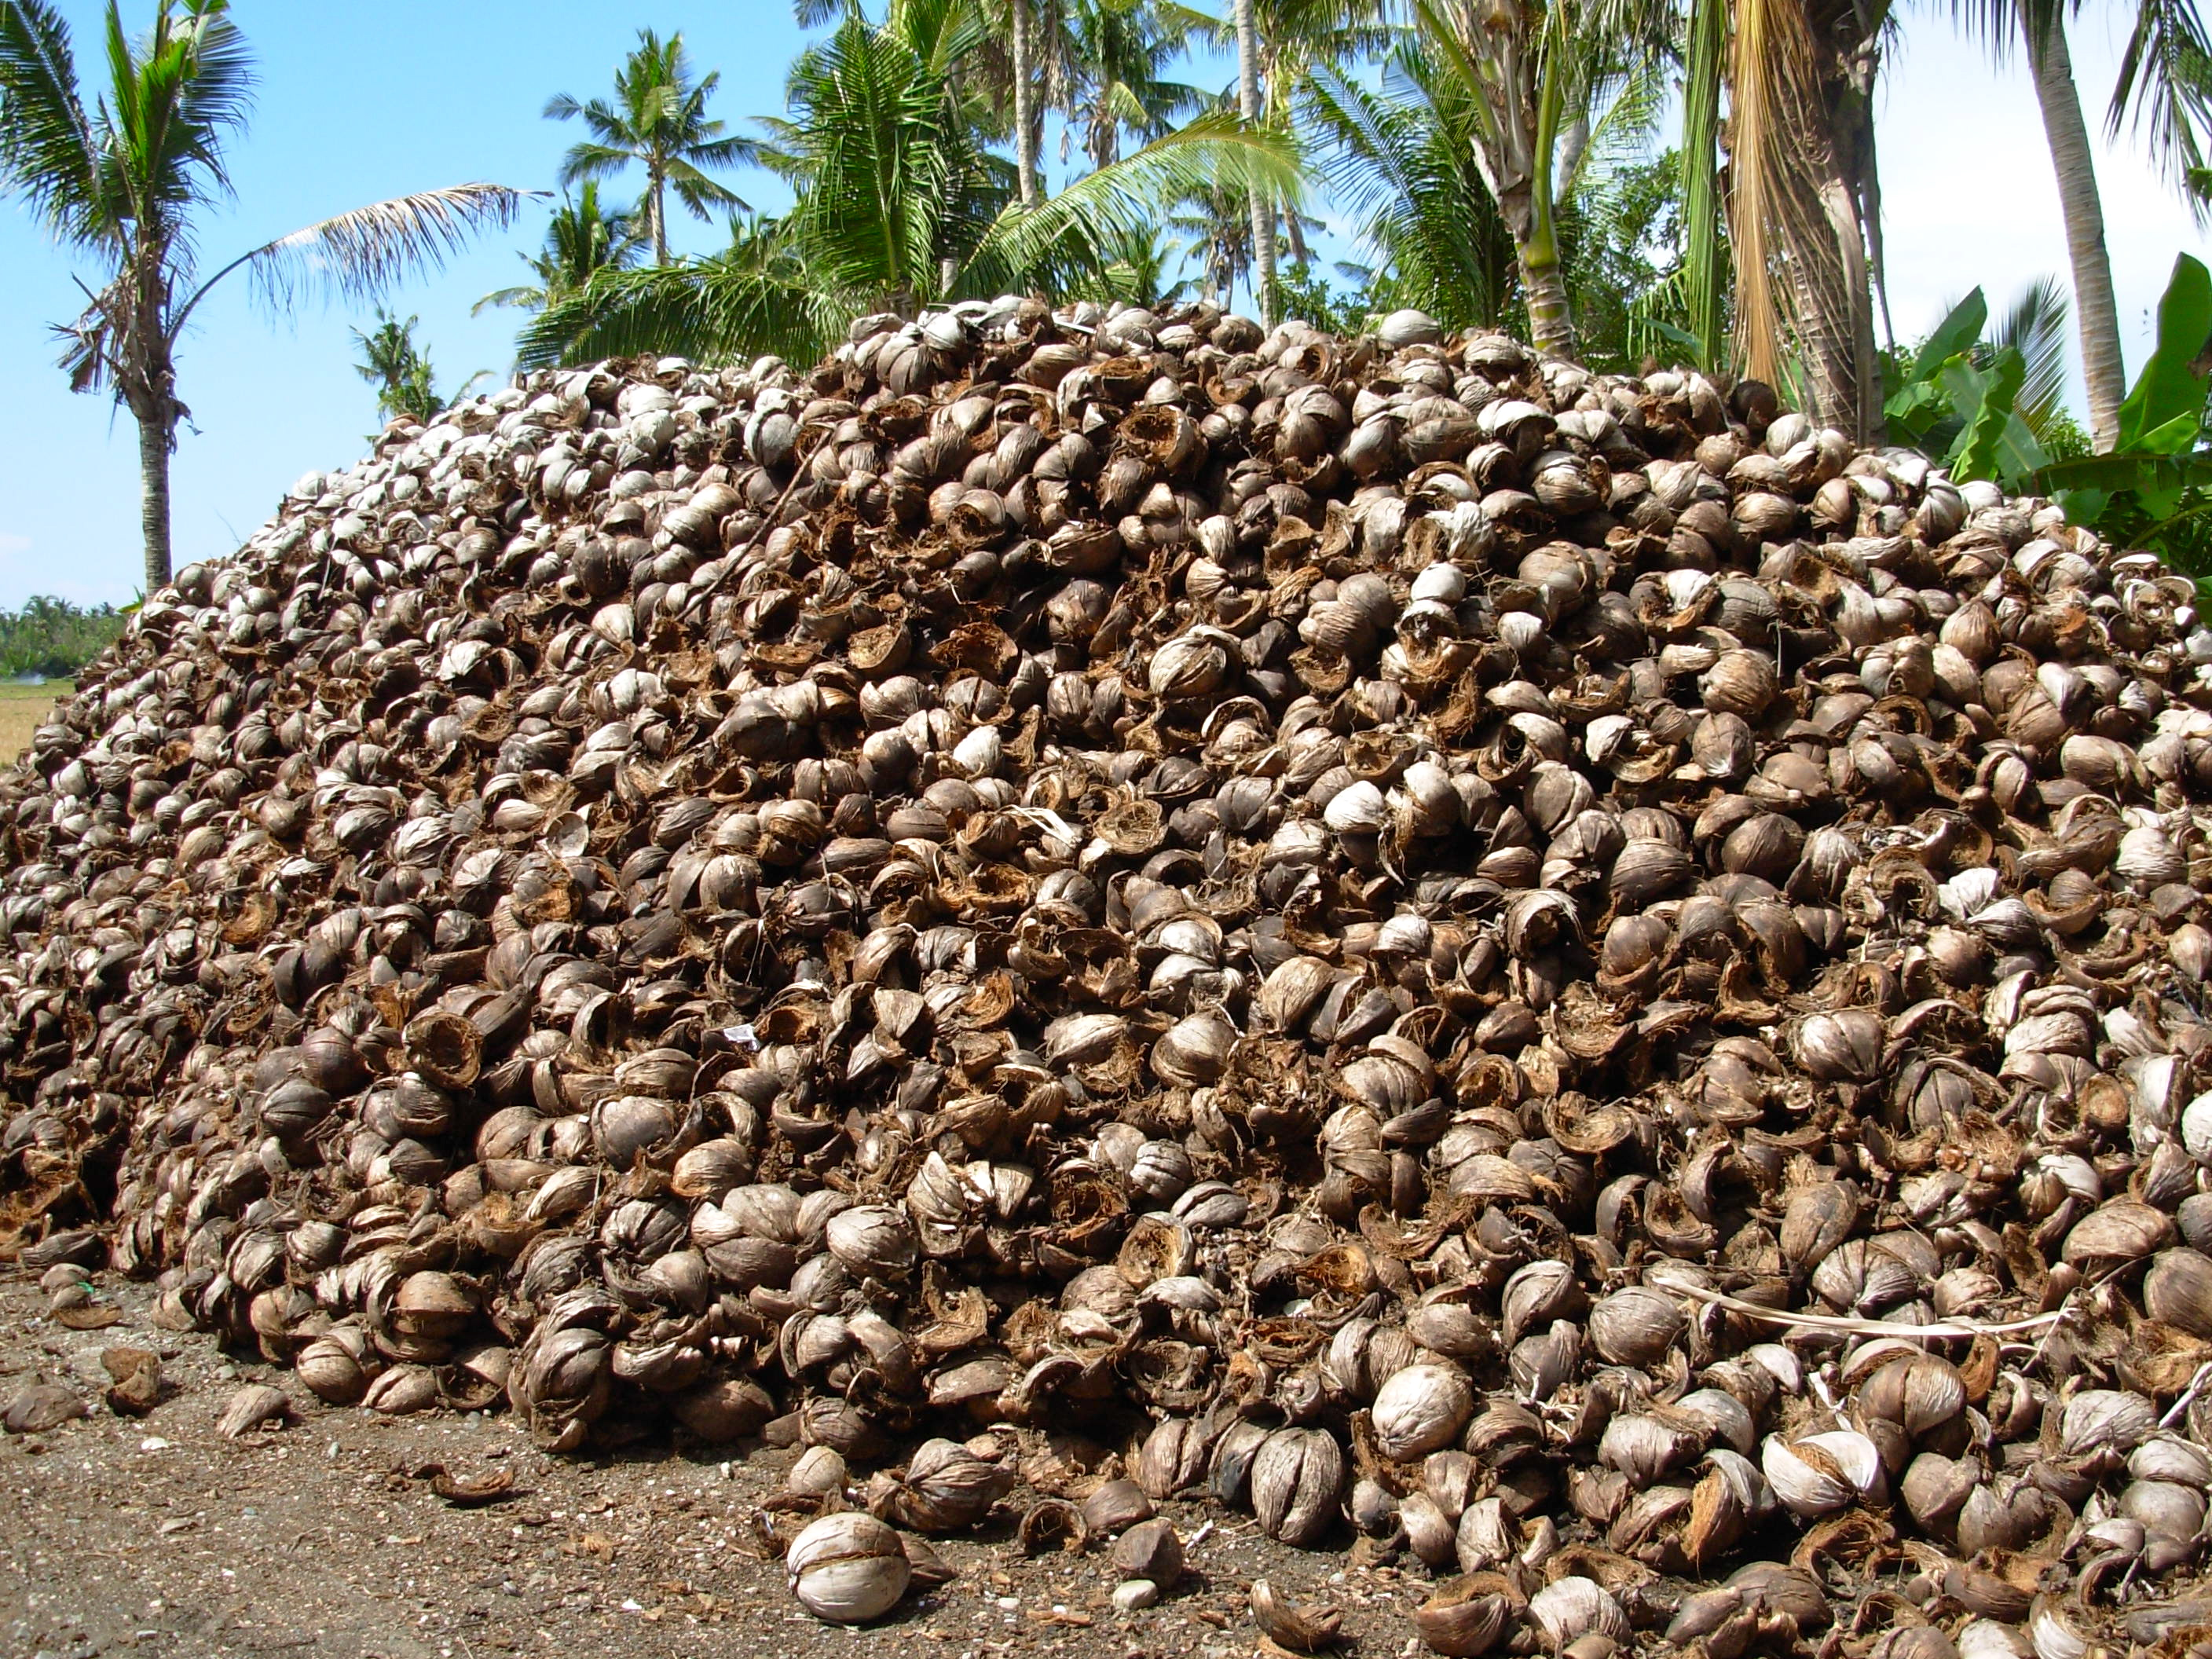 Company converts coconut husk fibers into materials for for Waste material images